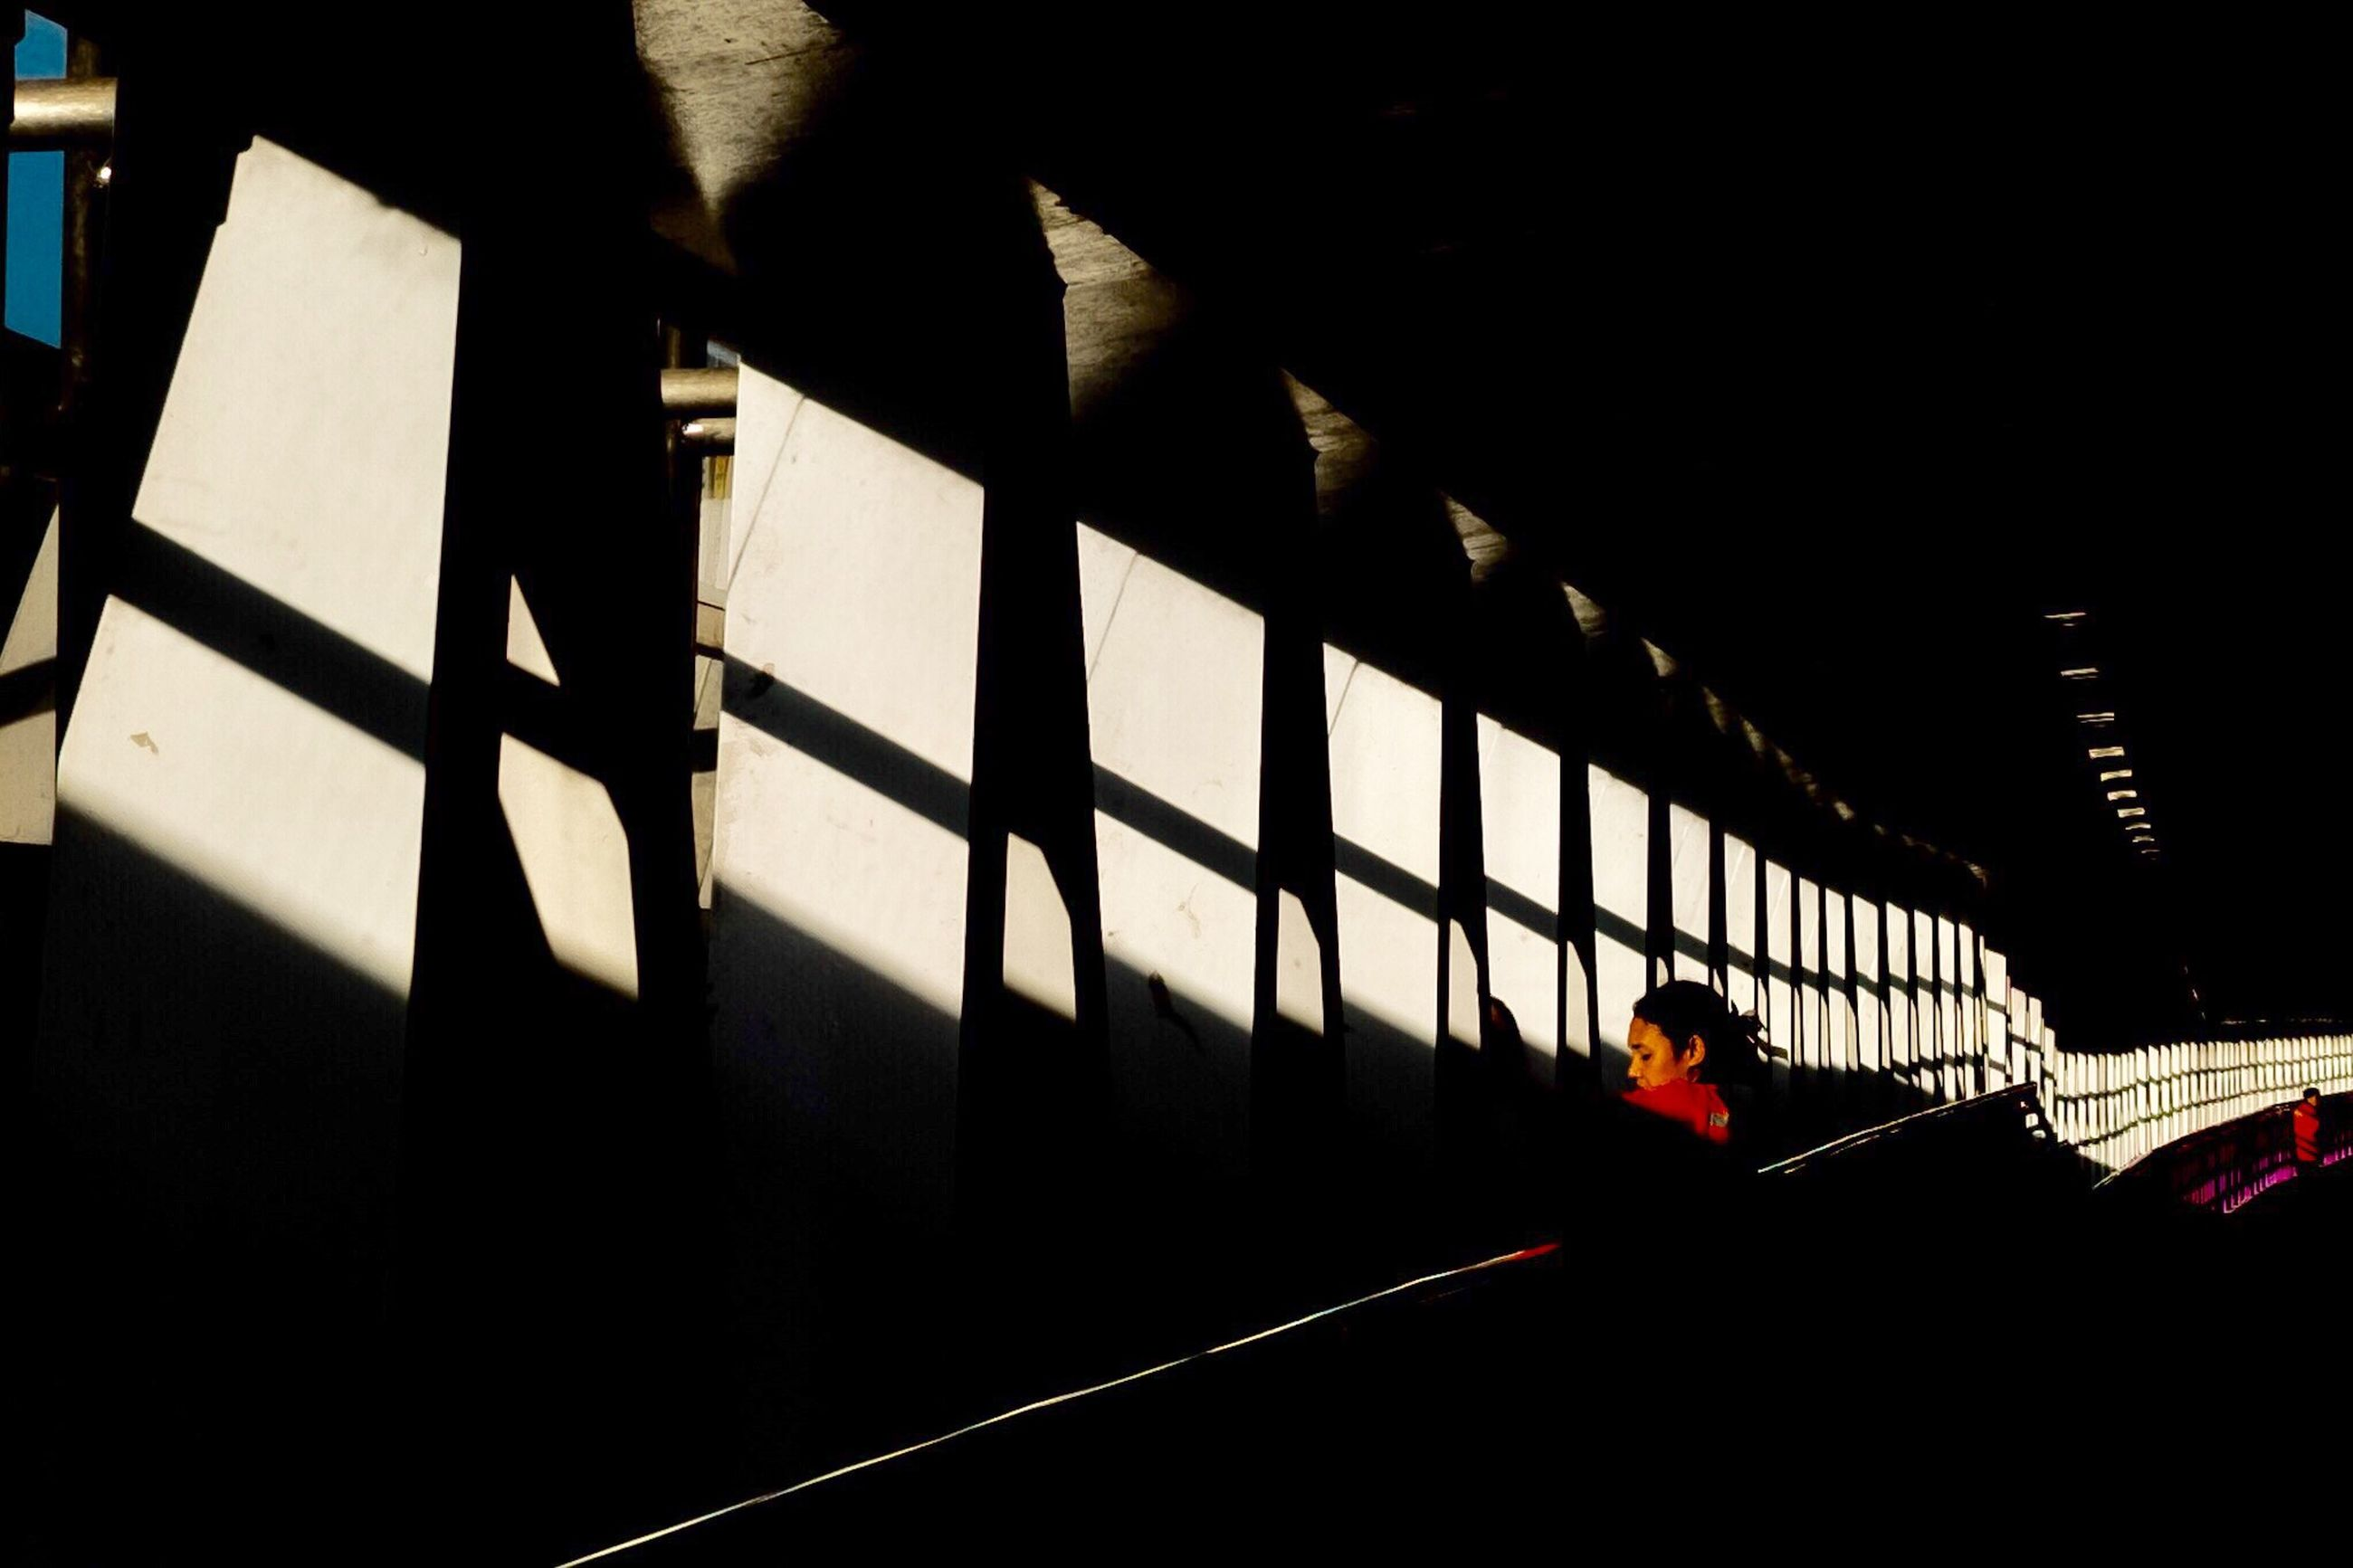 silhouette, indoors, real people, built structure, sunlight, architecture, shadow, transportation, one person, standing, day, men, women, illuminated, people